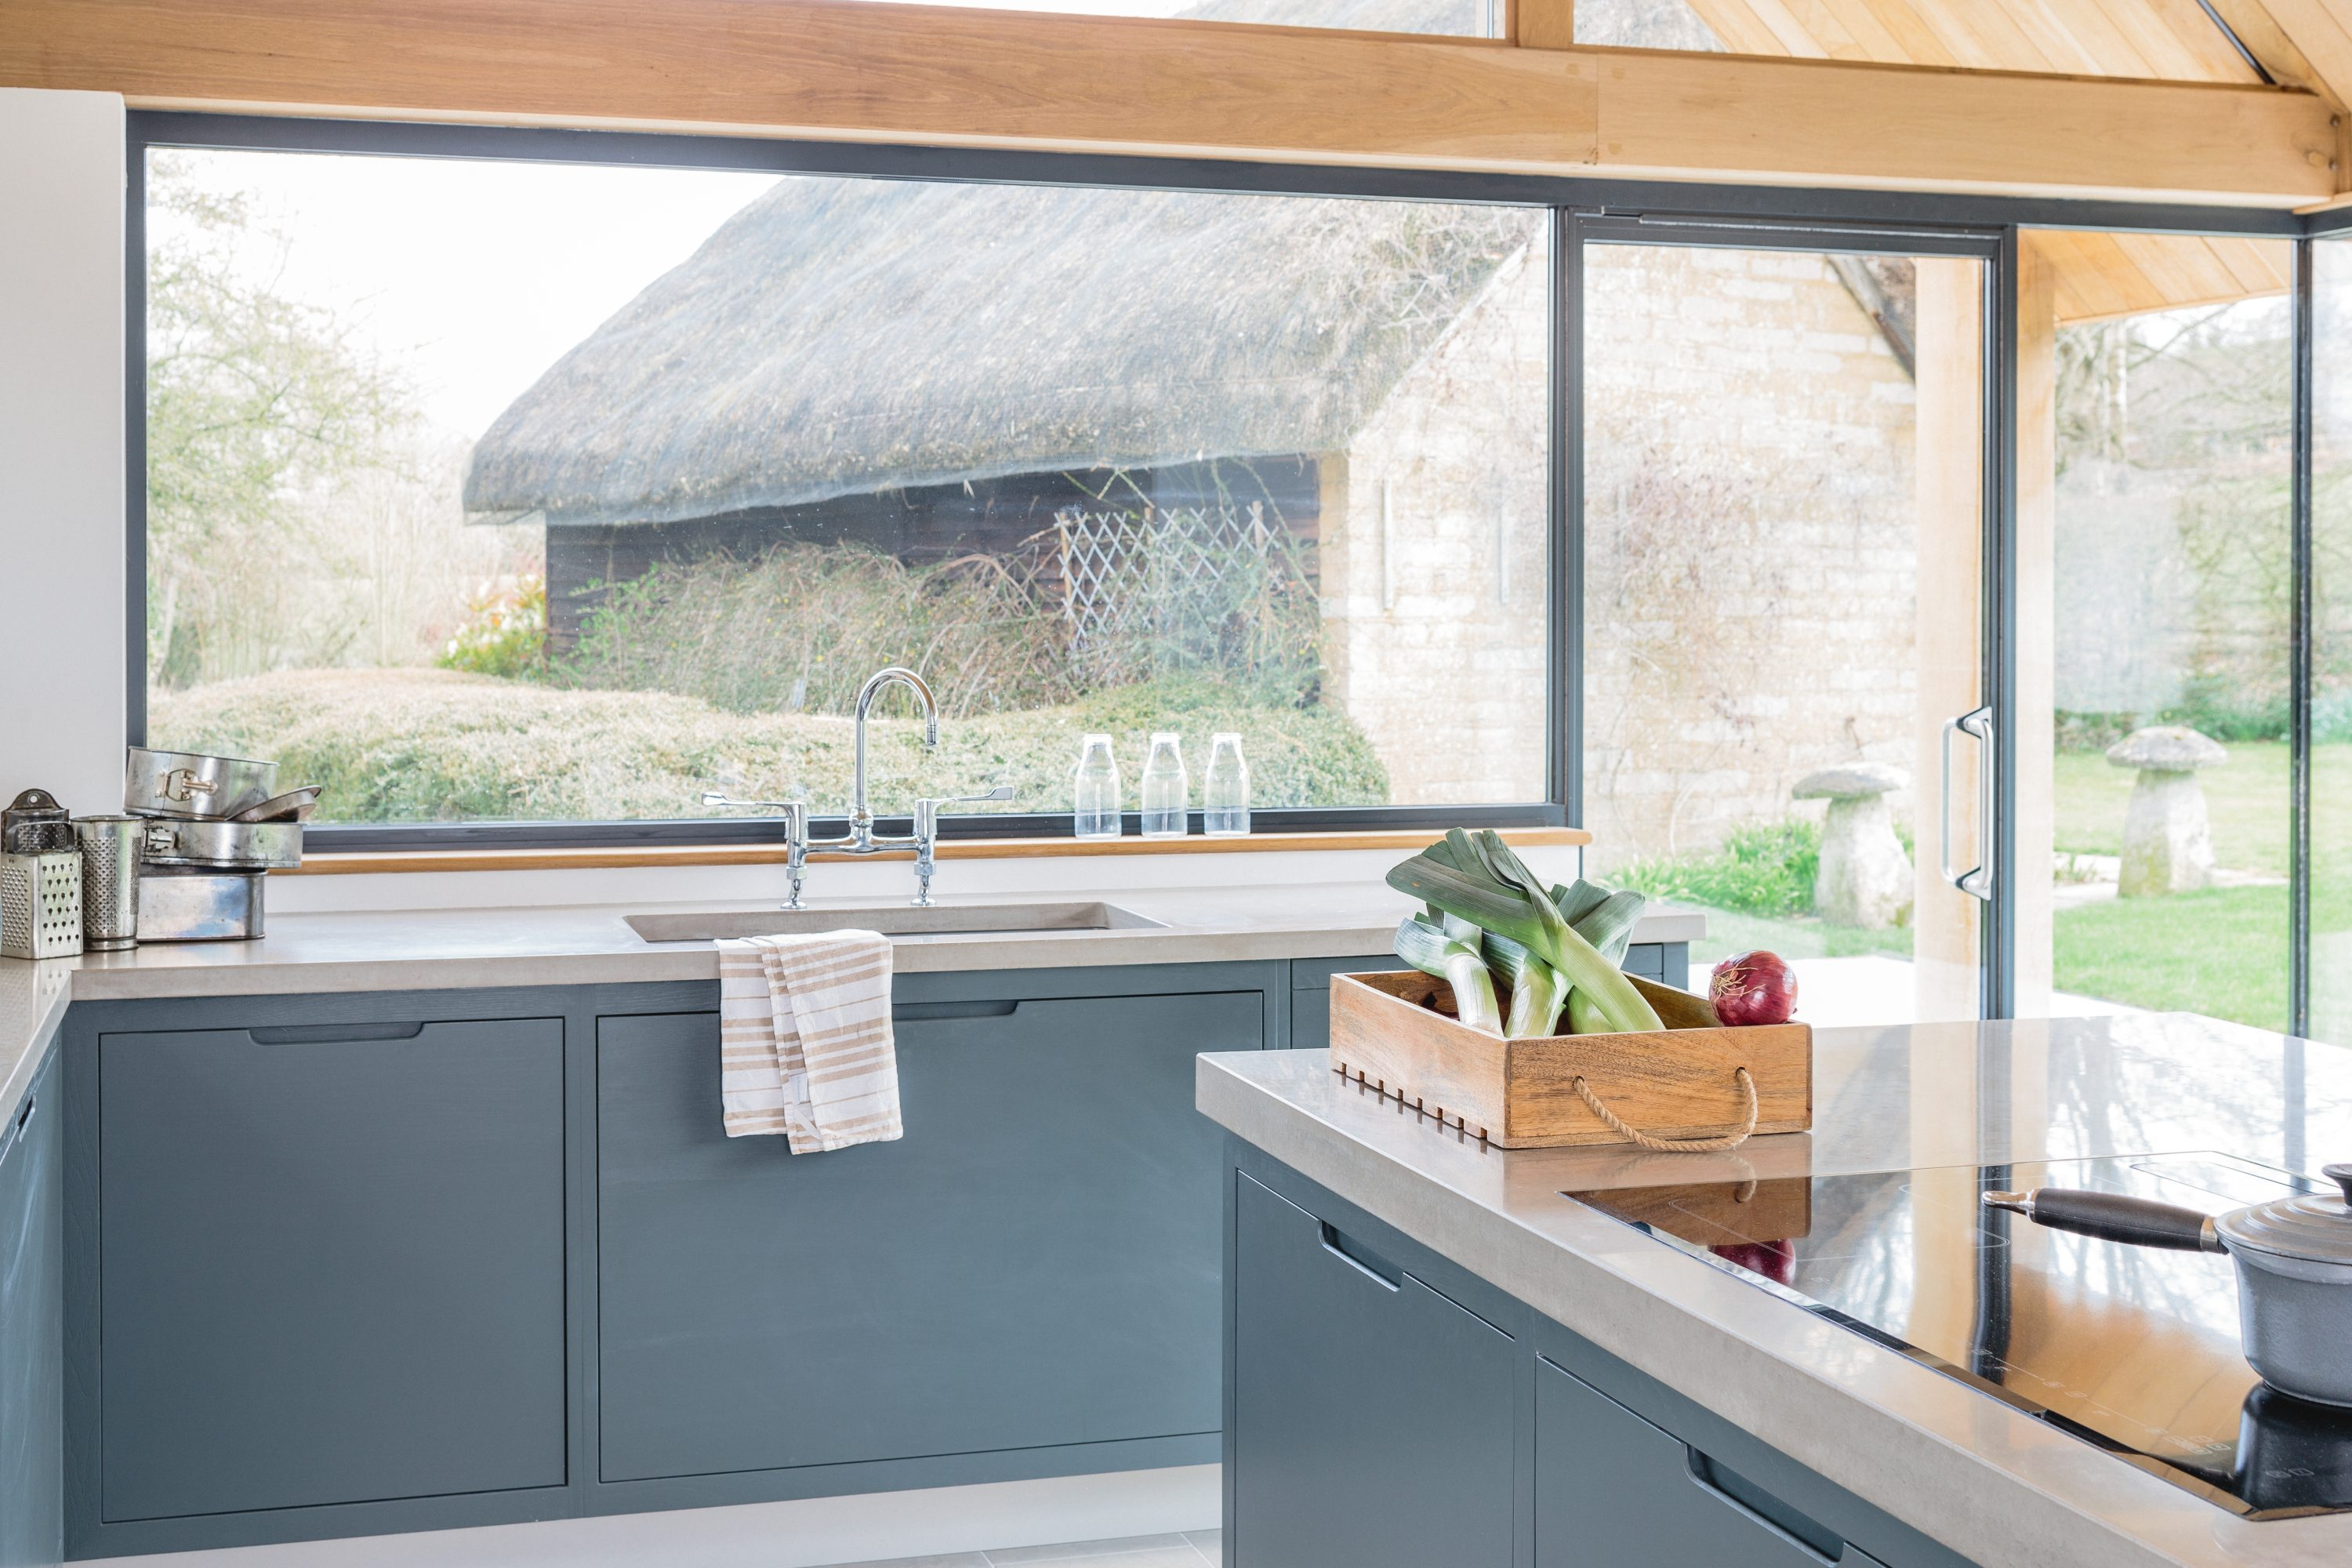 Environmentally Friendly - Sustainable Kitchens